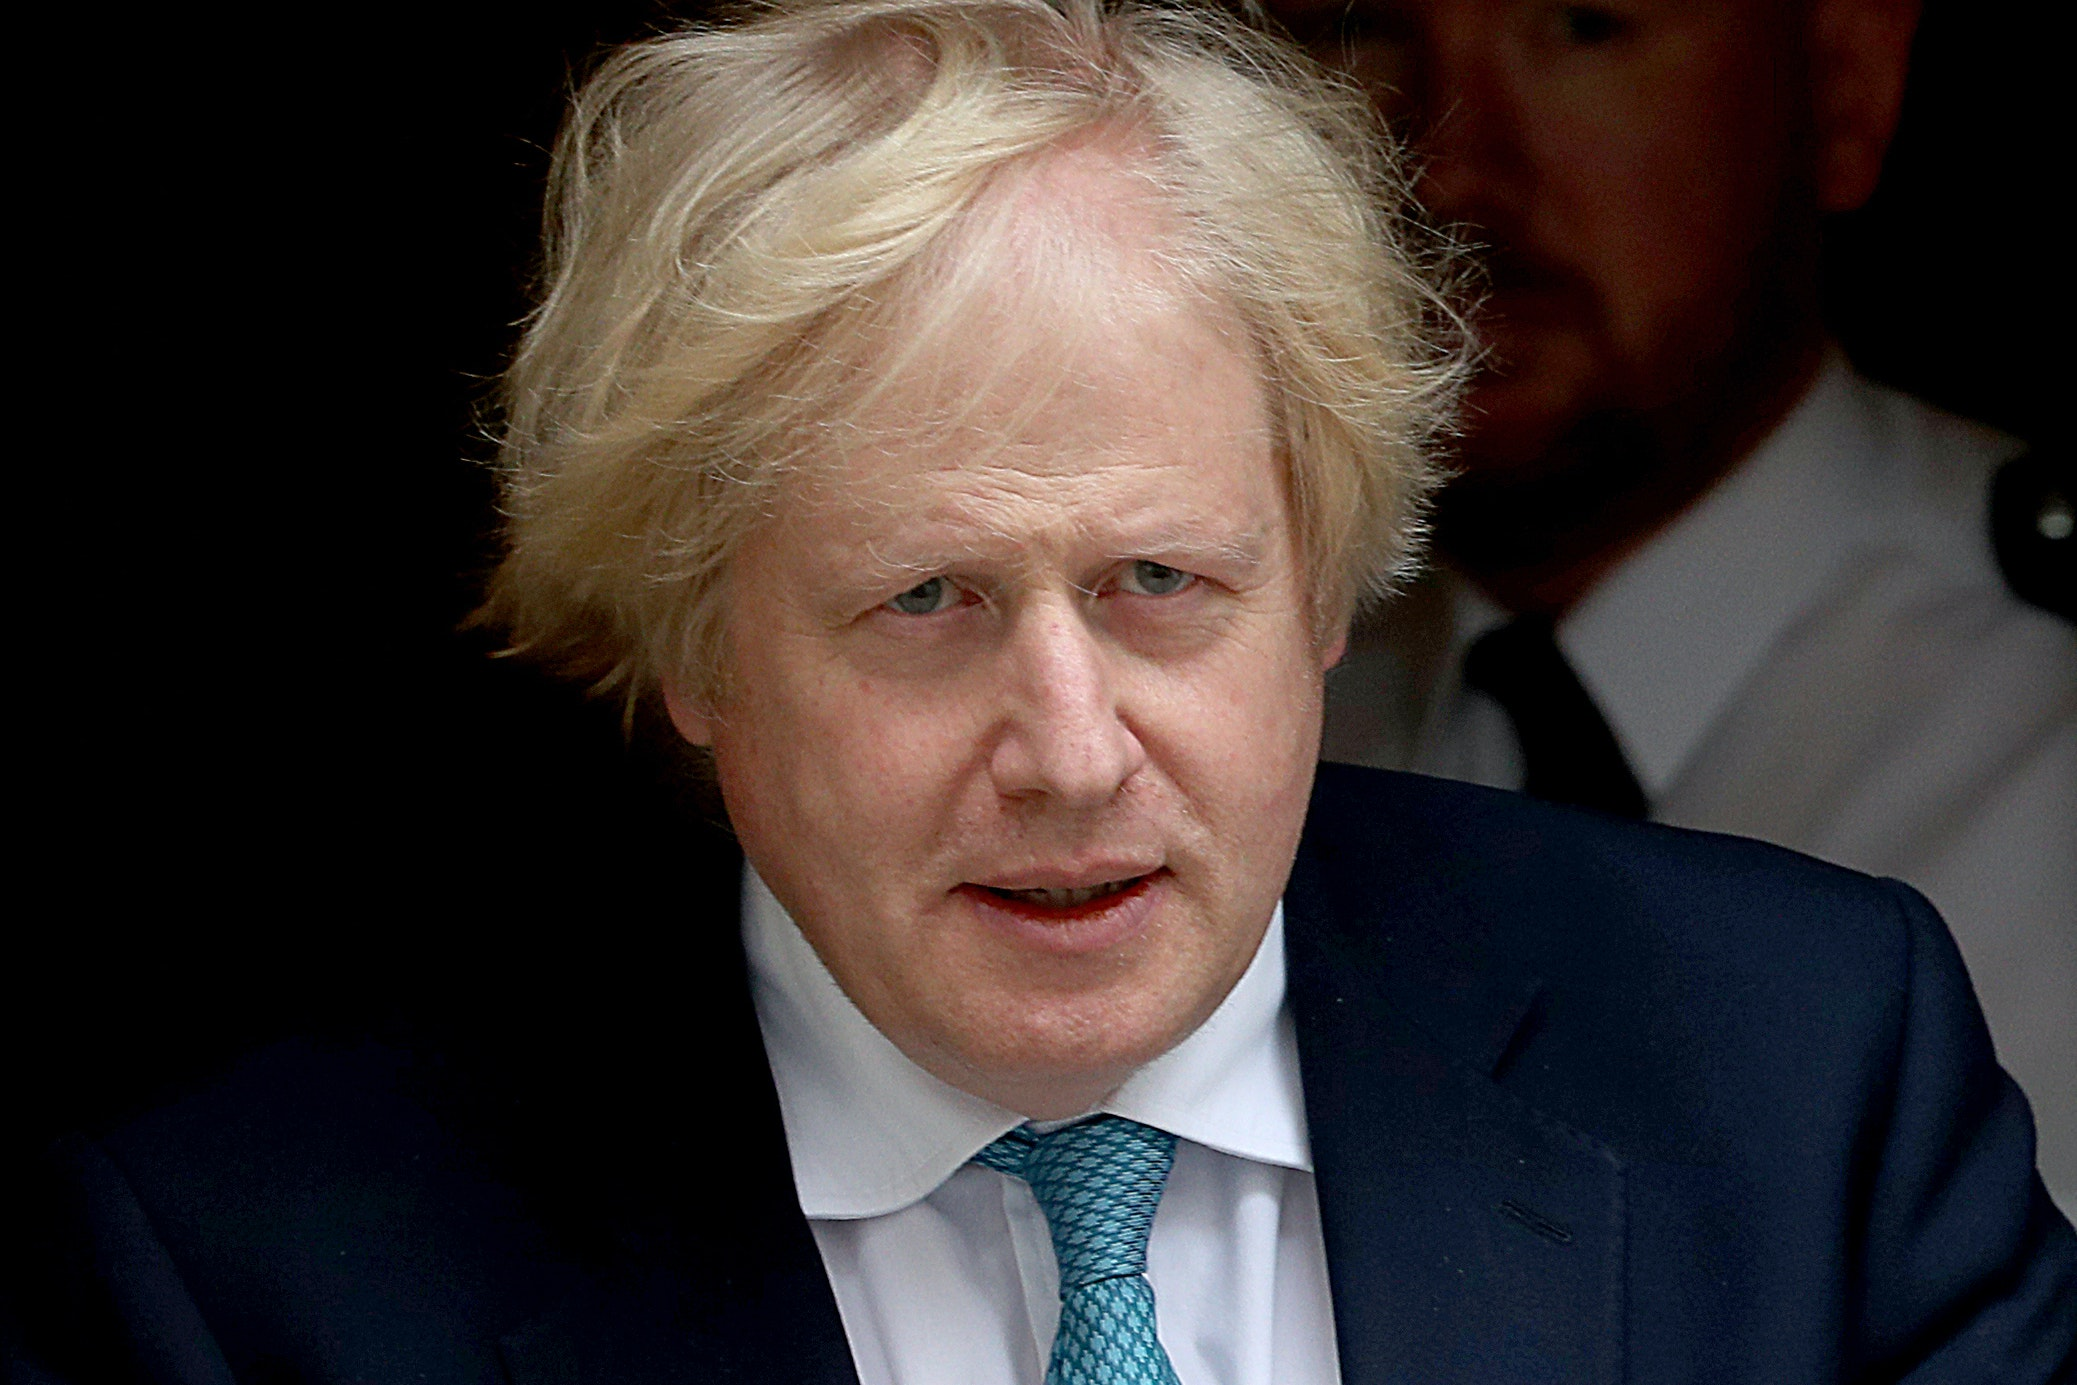 Boris Johnson: People abroad don't see Scotland, they 'see British institutions'